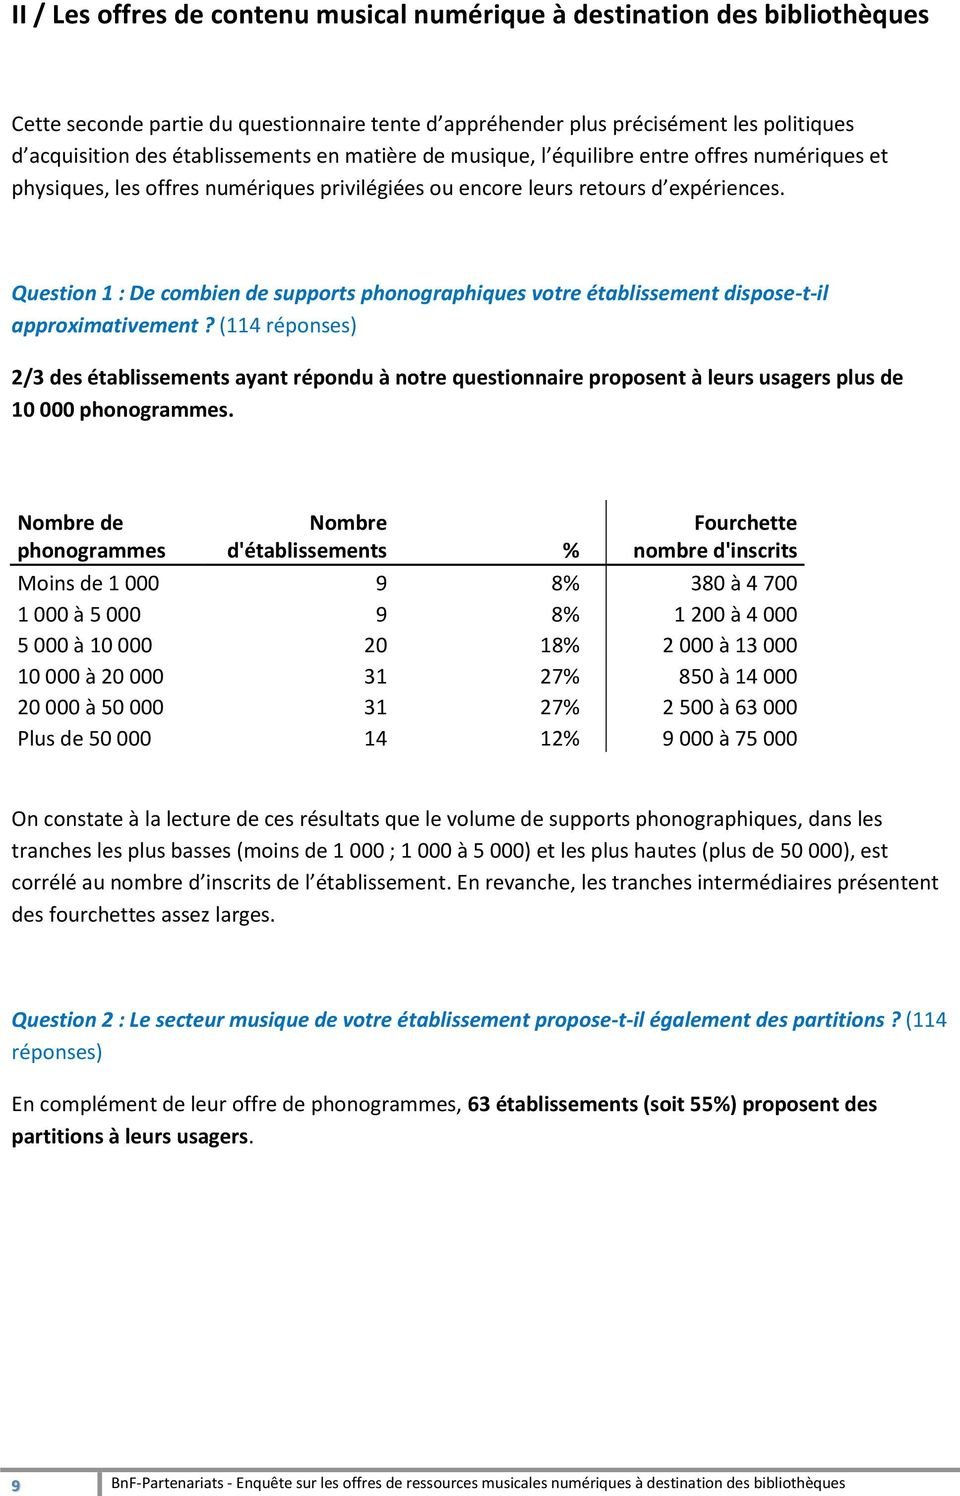 Question 1 : De combien de supports phonographiques votre établissement dispose-t-il approximativement?